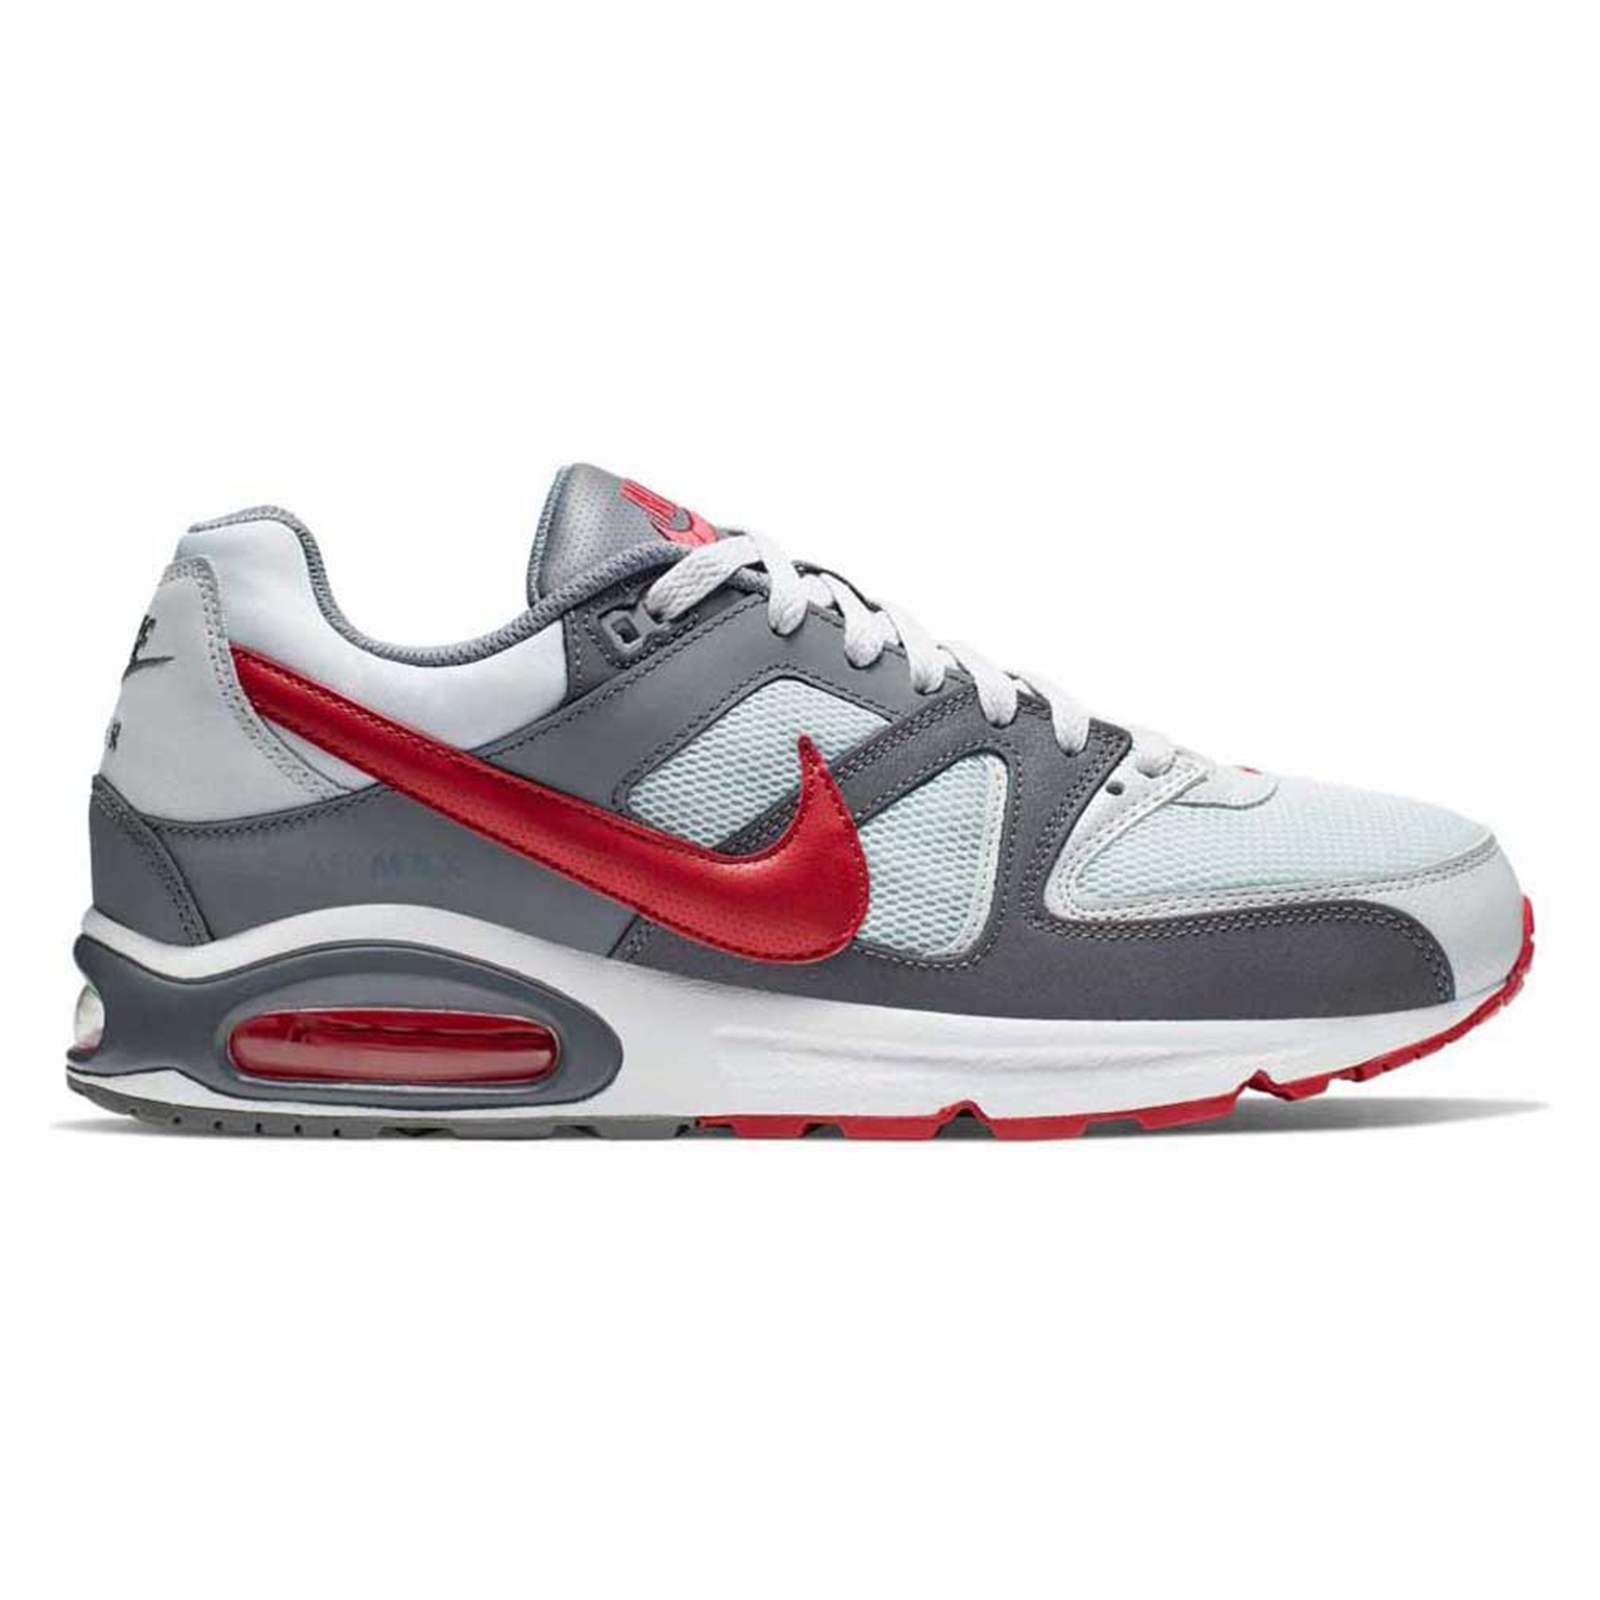 nike air max command uomo running trainers 629993 sneakers scarpe